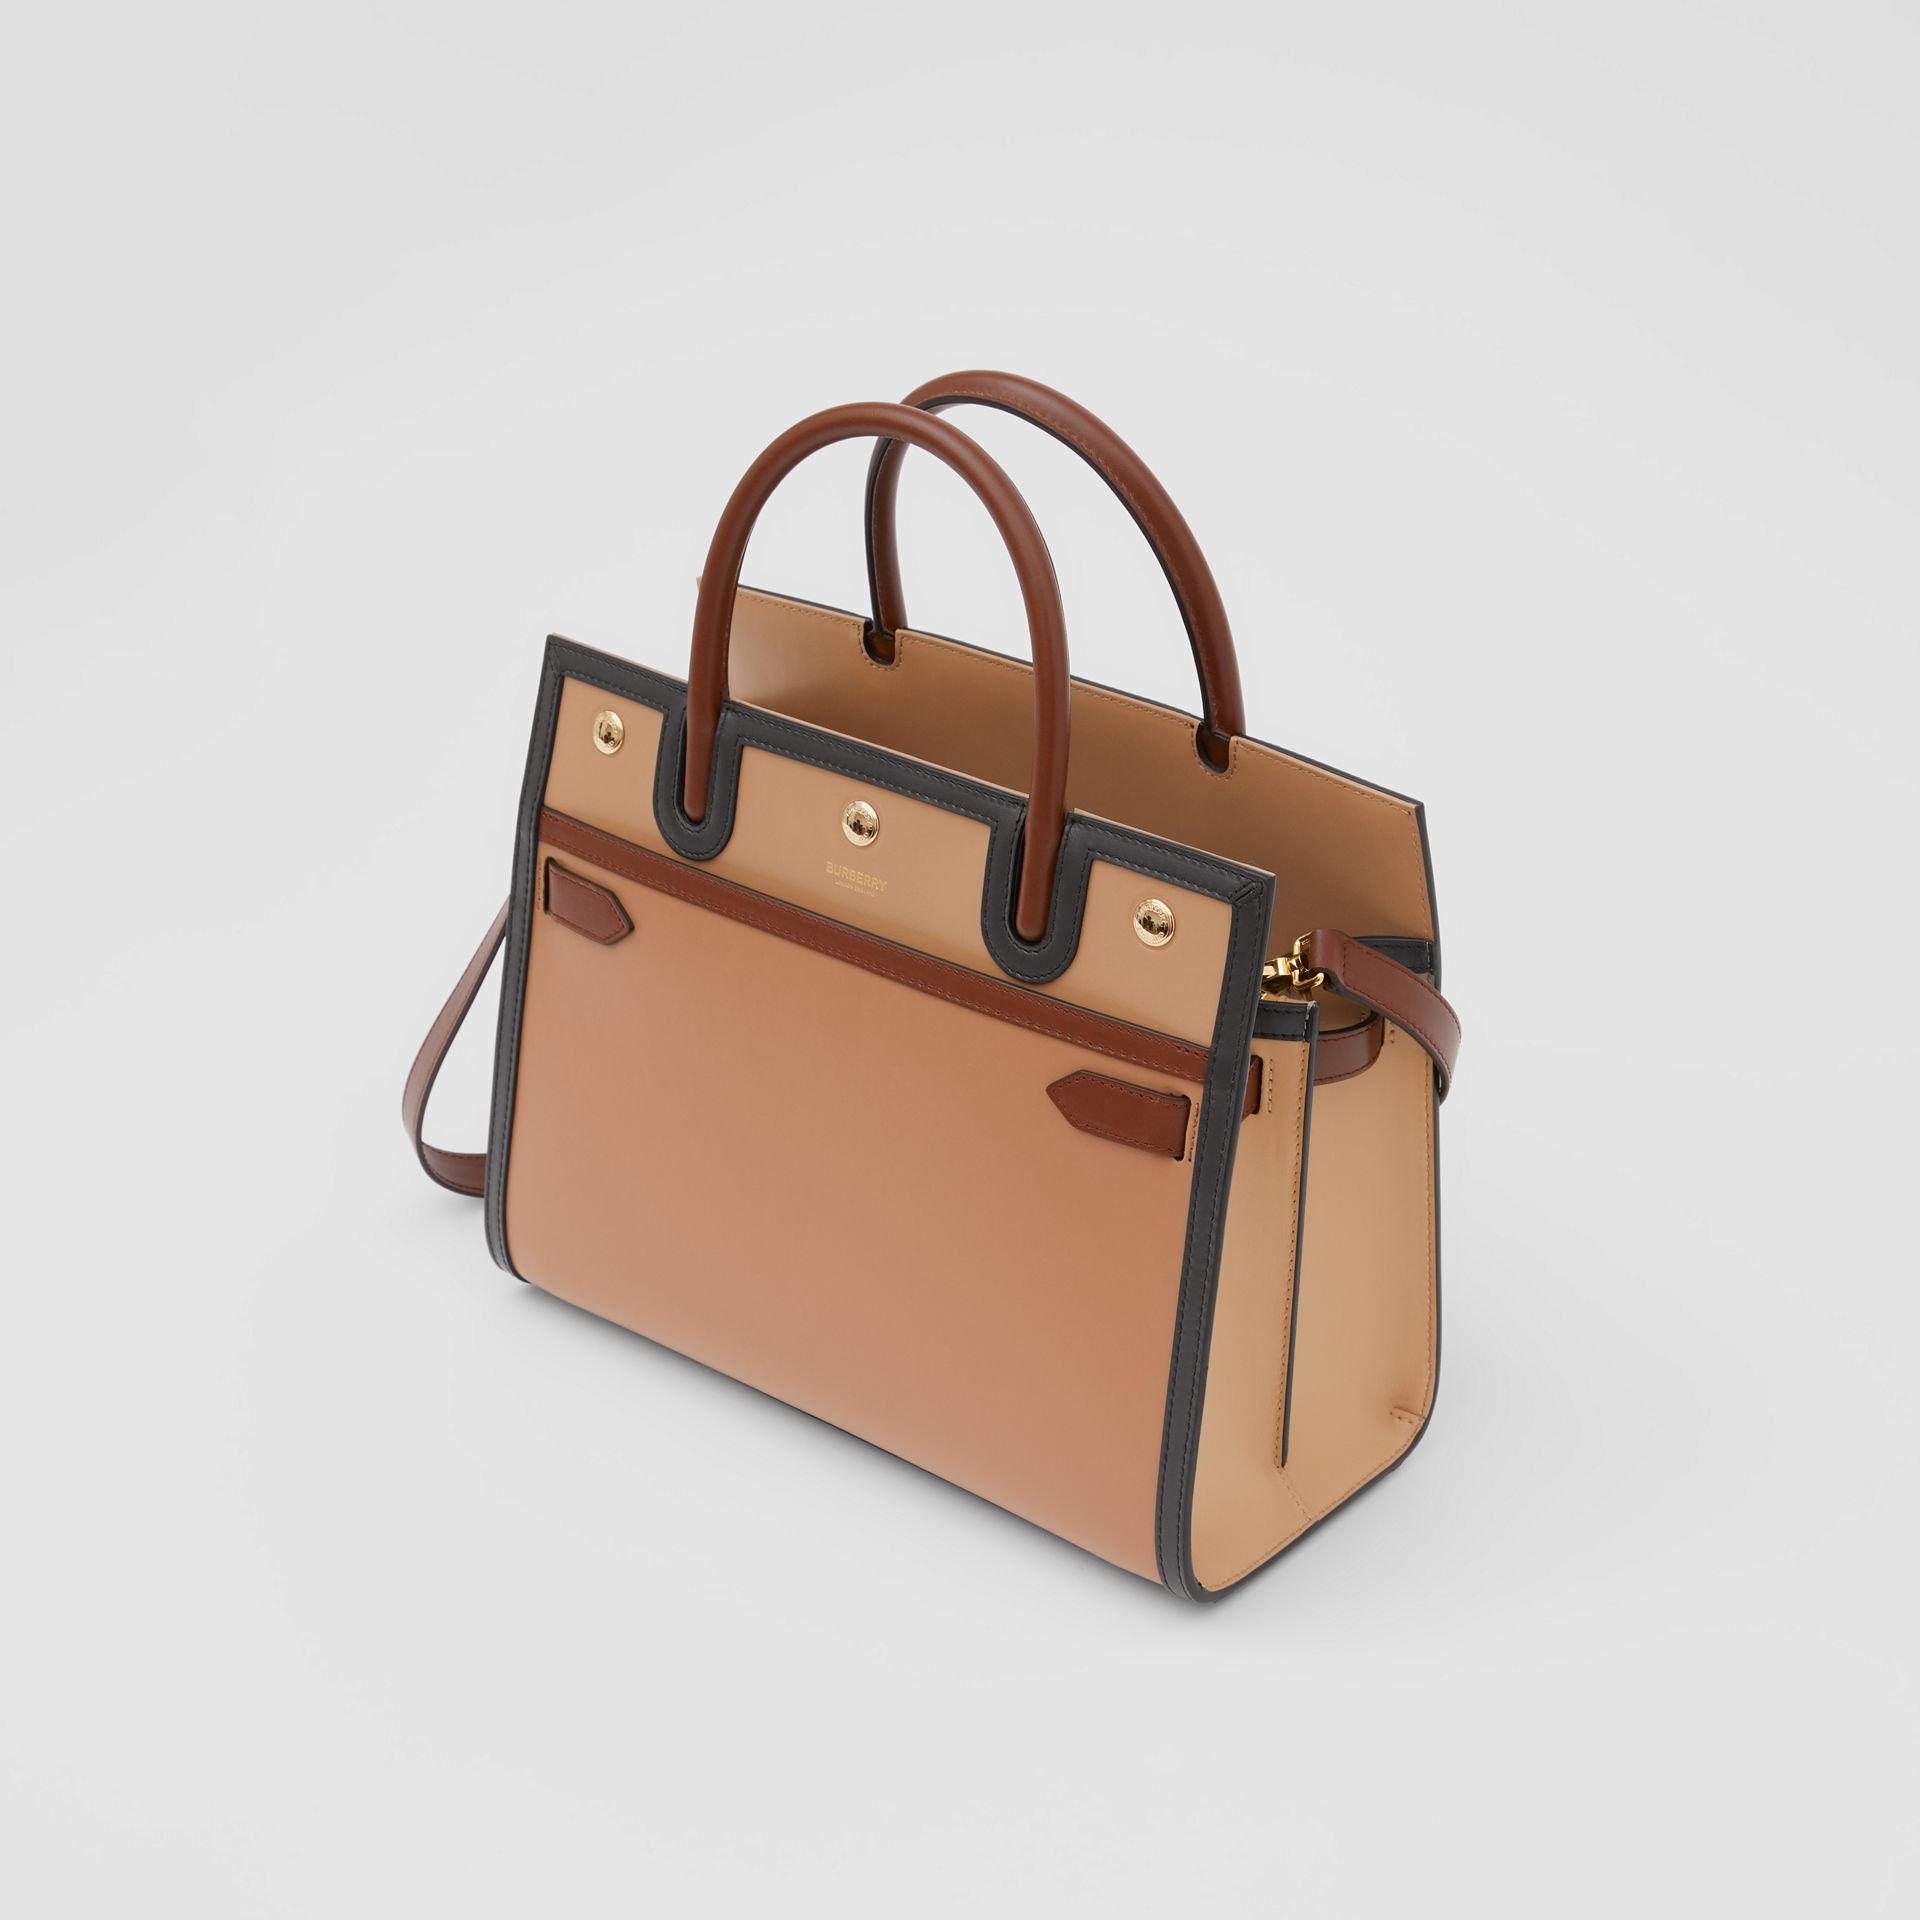 Small Leather Two-handle Title Bag in Soft Fawn - Women | Burberry - gallery image 3